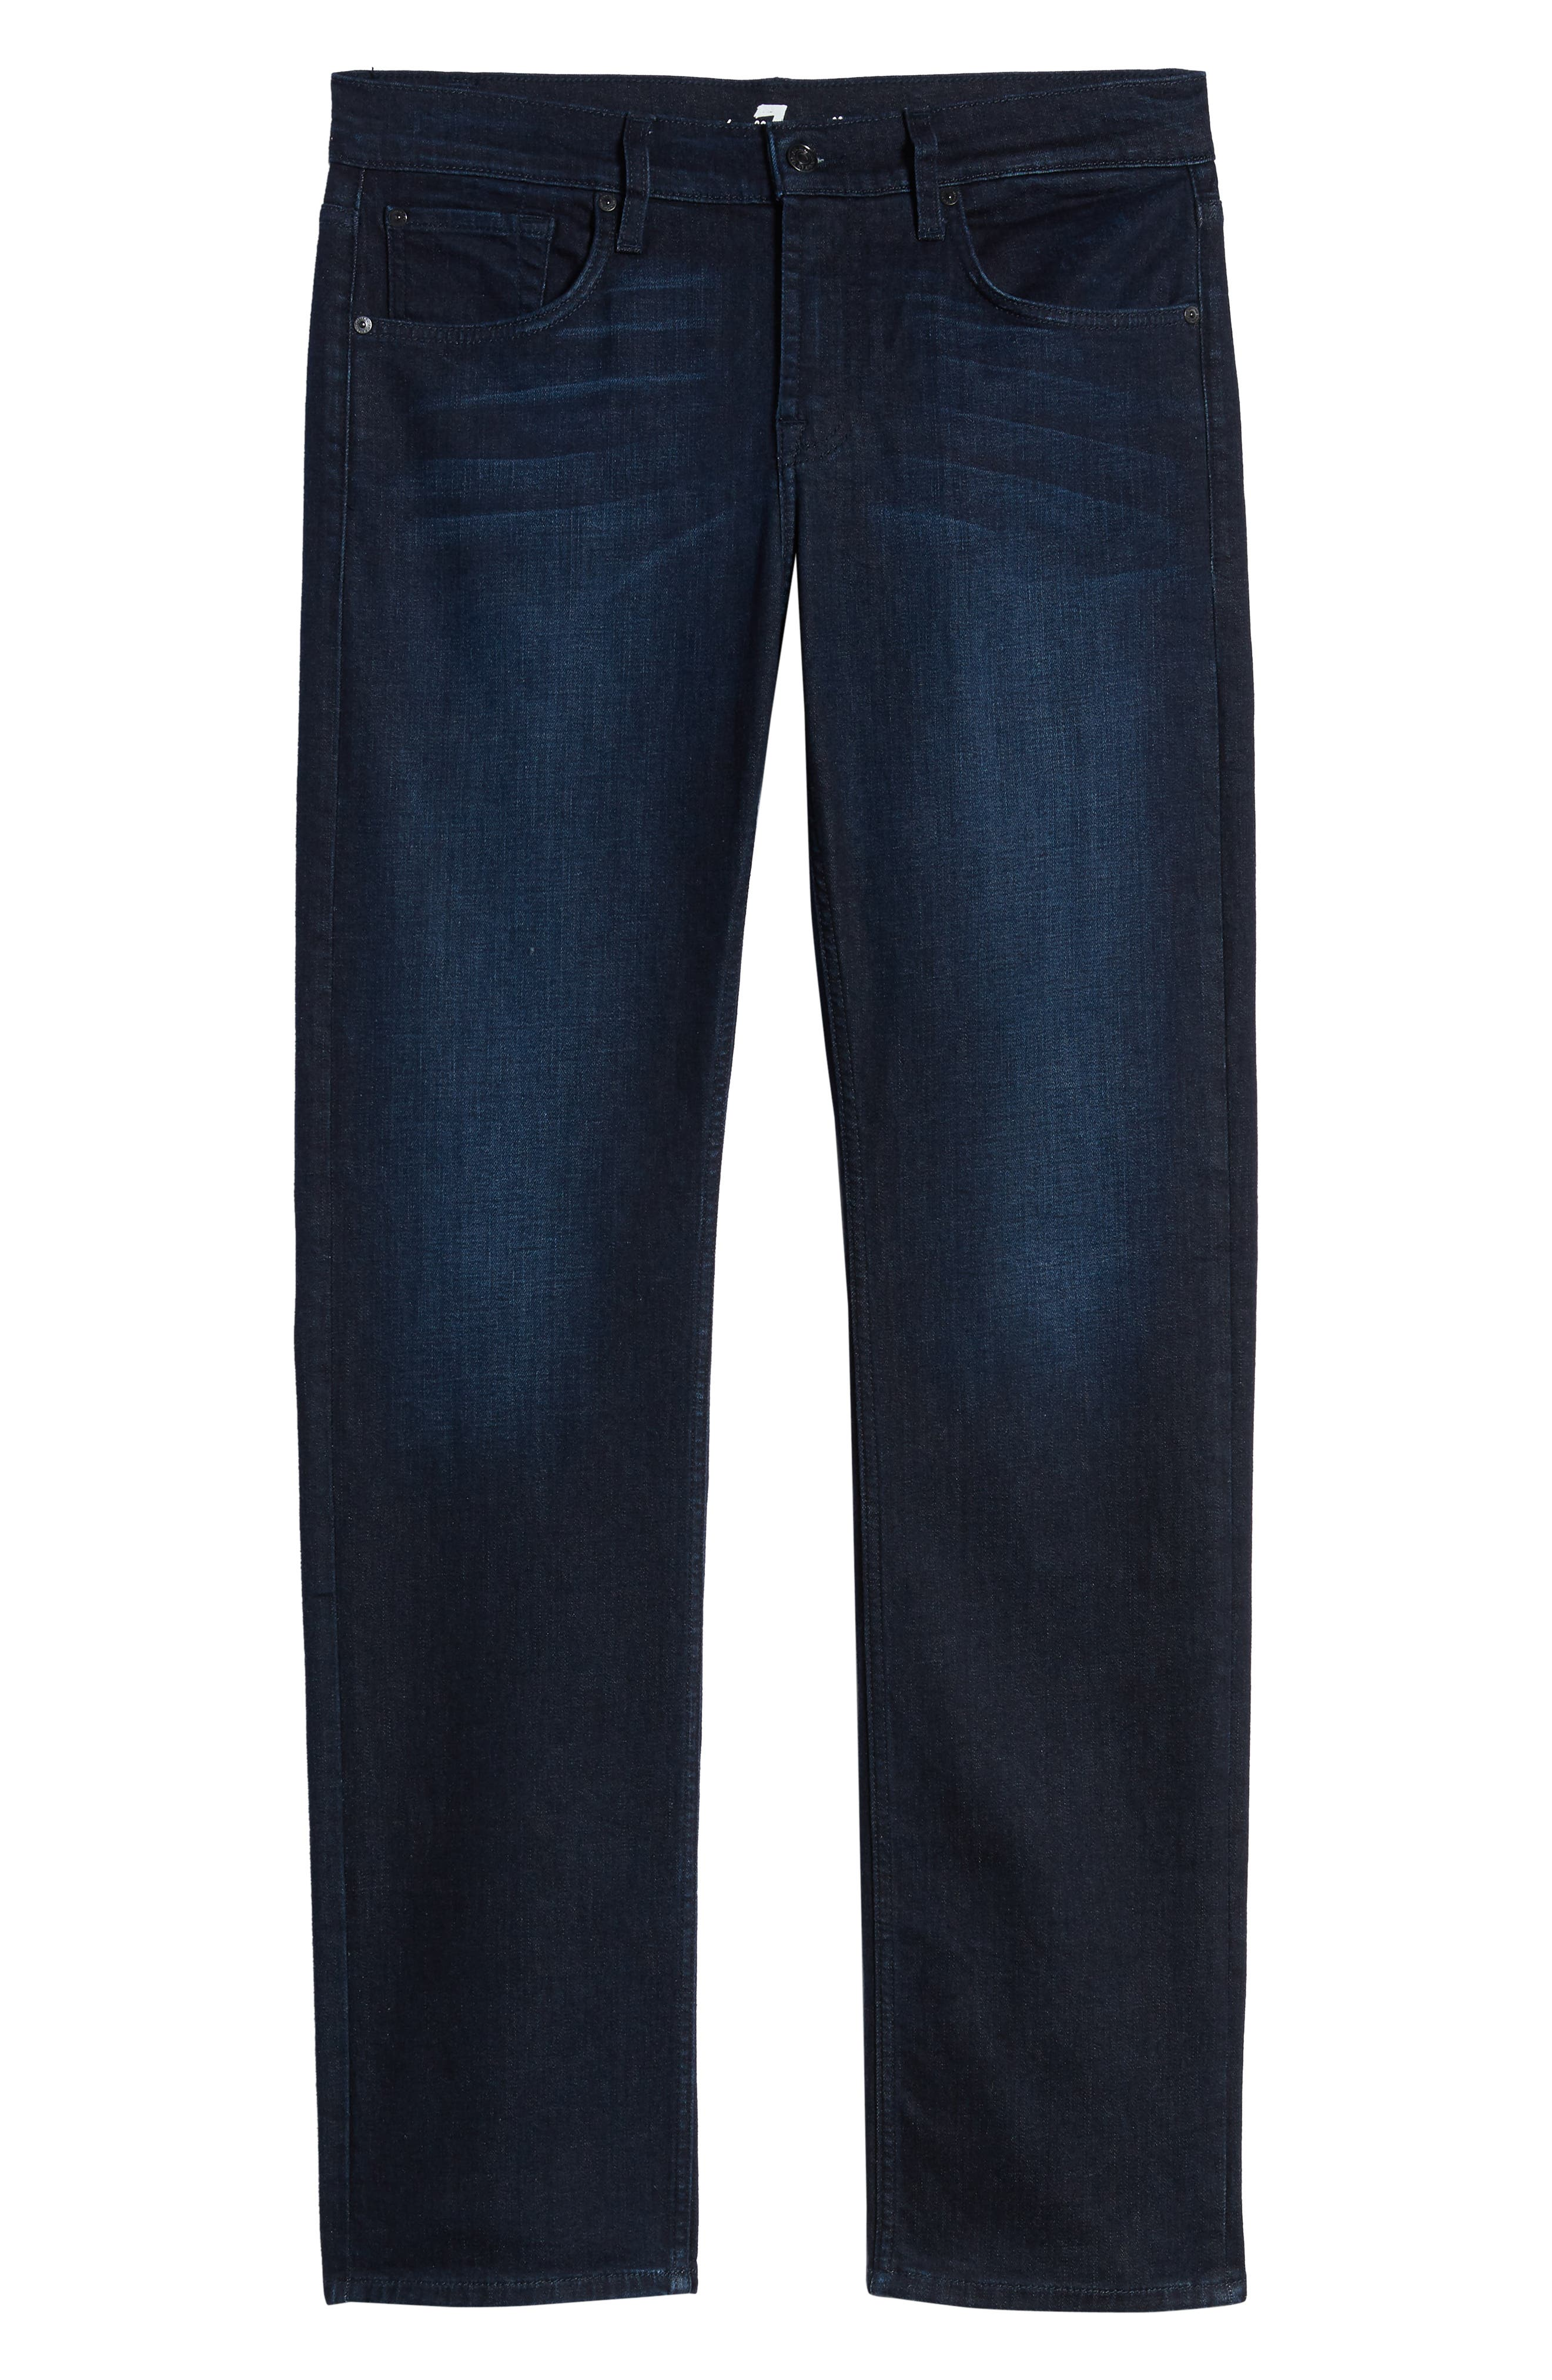 7 FOR ALL MANKIND<SUP>®</SUP>, Carson Straight Fit Jeans, Alternate thumbnail 7, color, RICHFIELD